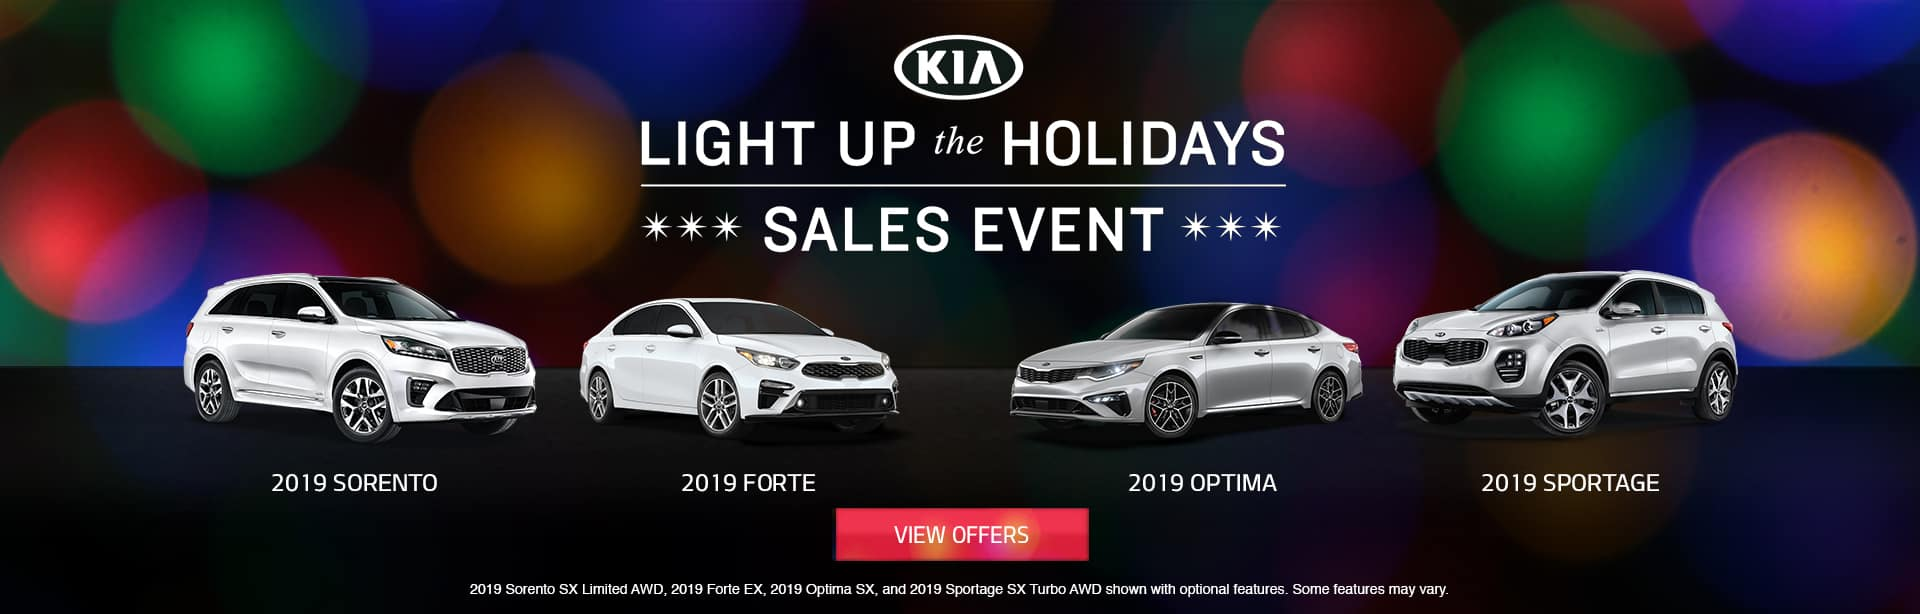 Light Up the Holidays No Offer 2018